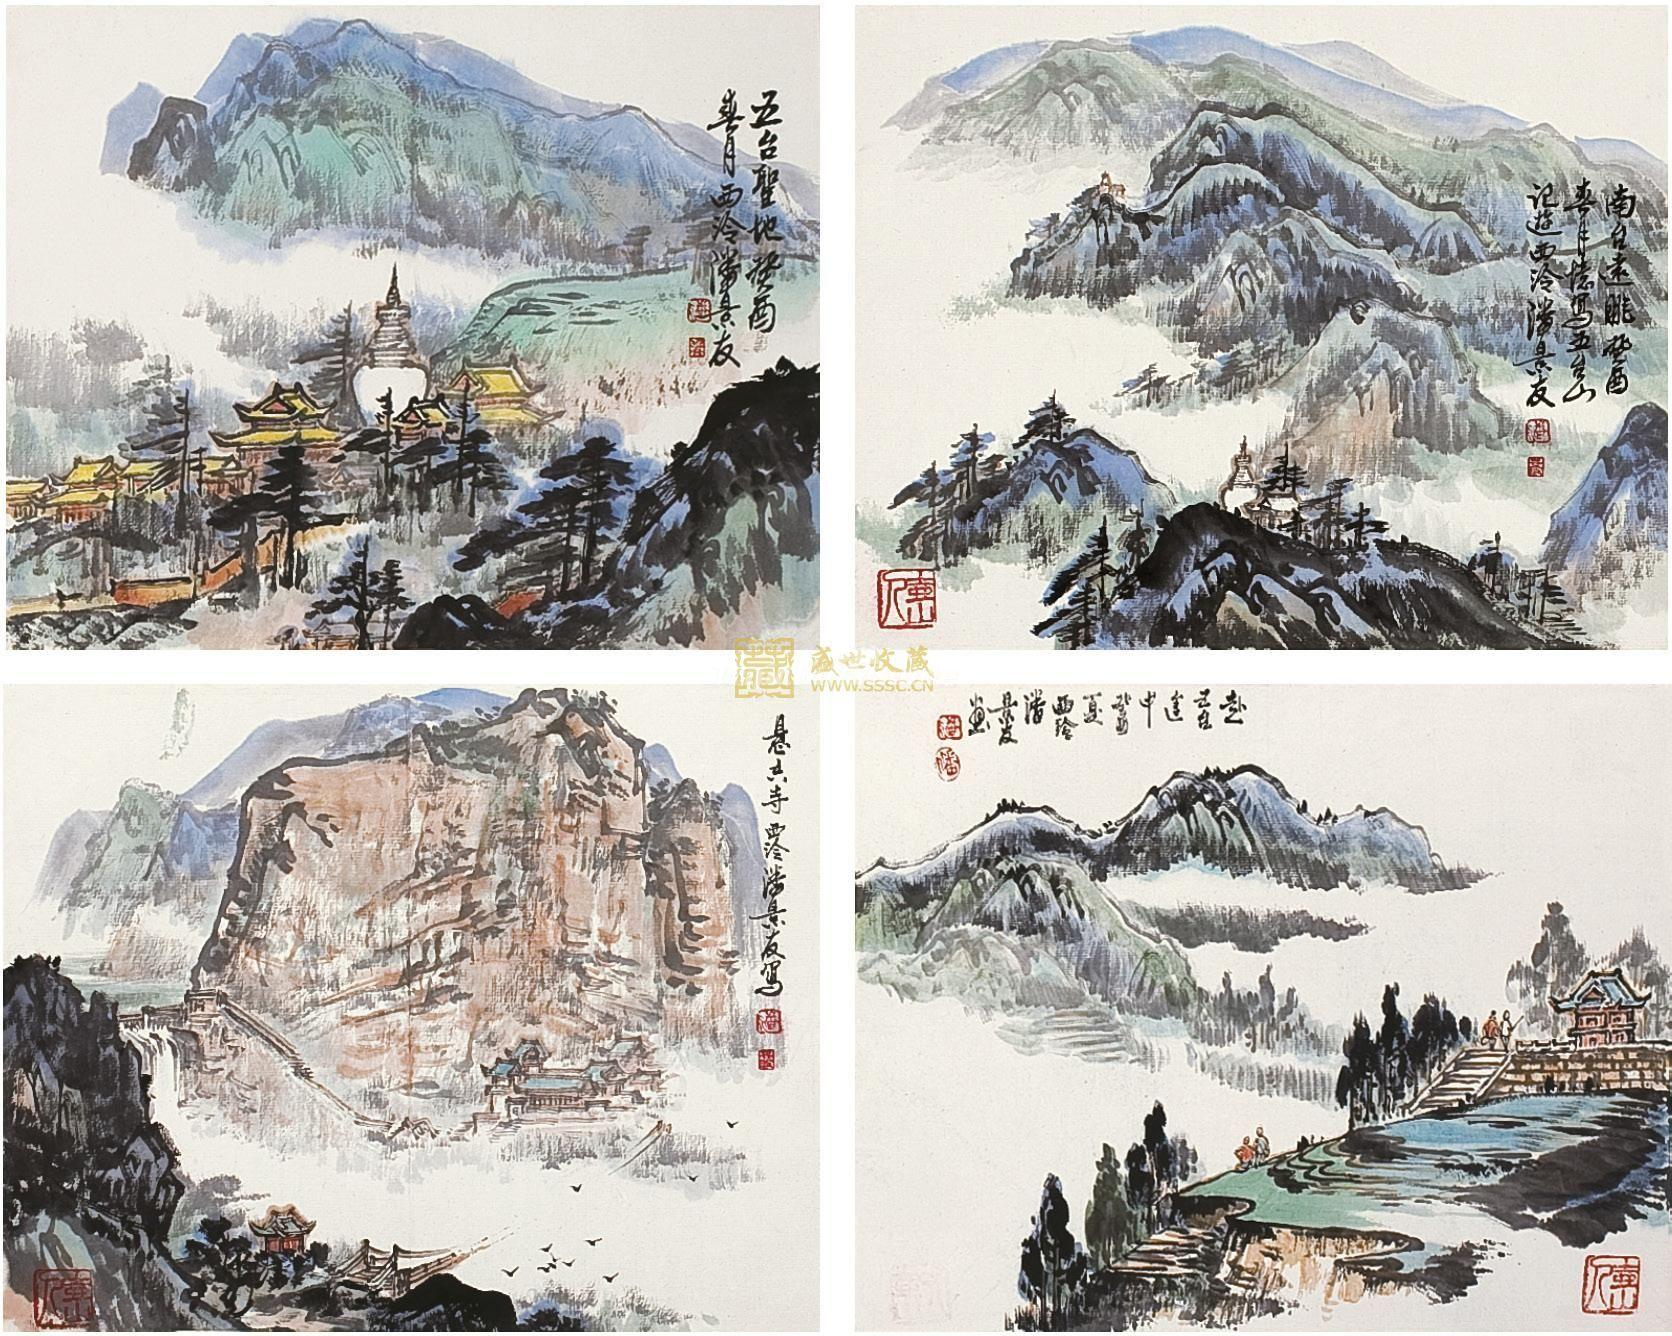 Mount Wutai in Traditional Chinese Paintings. (Courtesy: tripchinaguide)